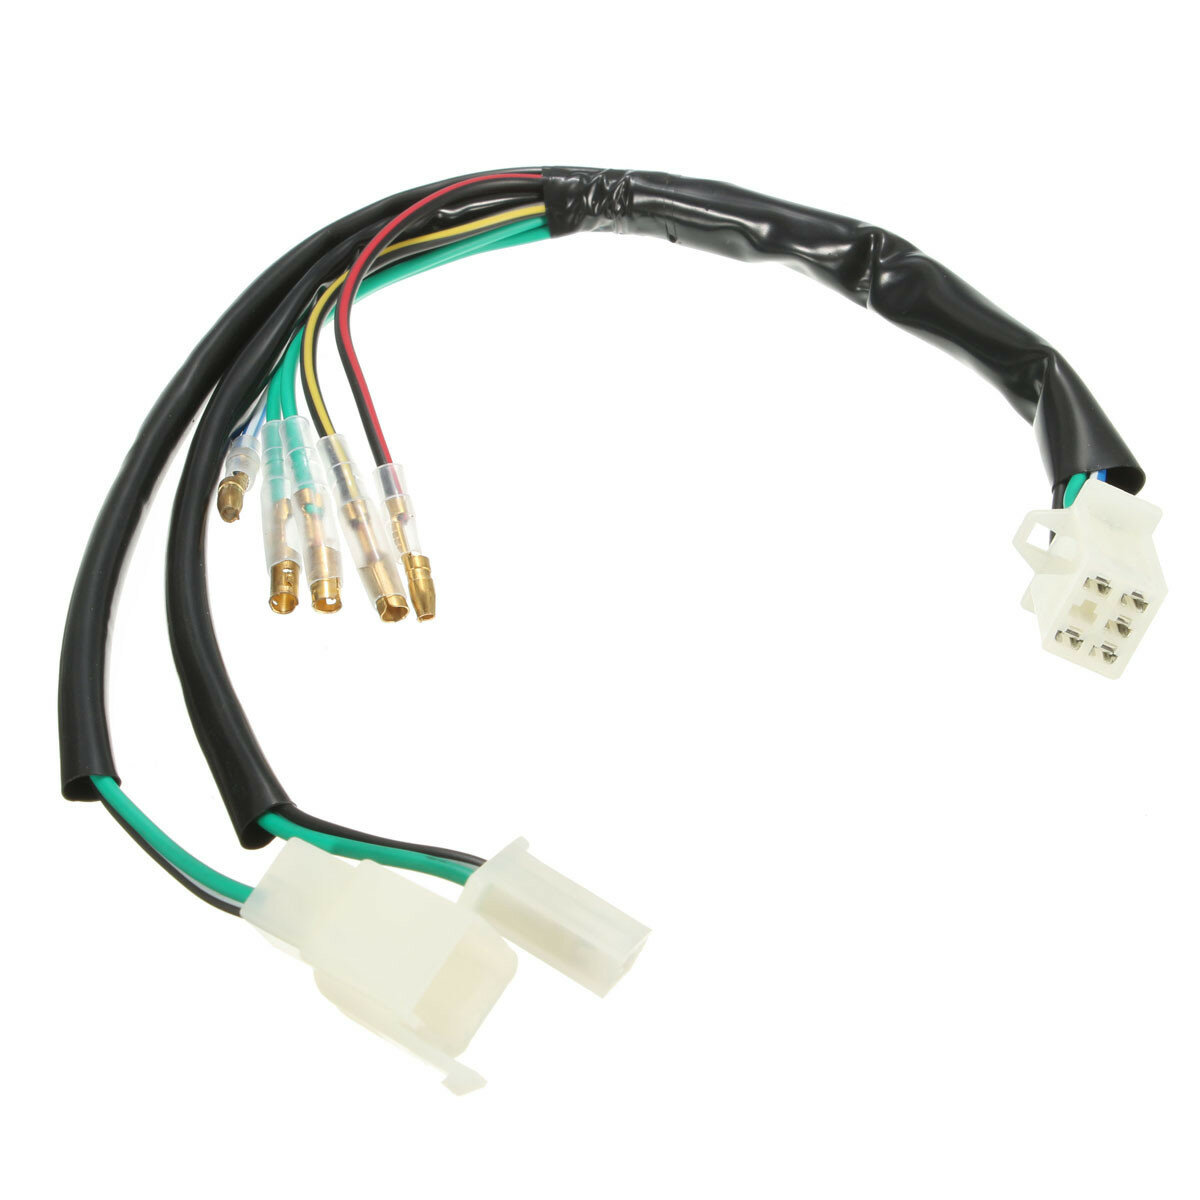 hight resolution of electric wiring harness loom for 50cc 90cc 110cc 125cc 140cc pit details about 50cc 90cc 110cc 125cc 140cc pit dirt bike wiring loom